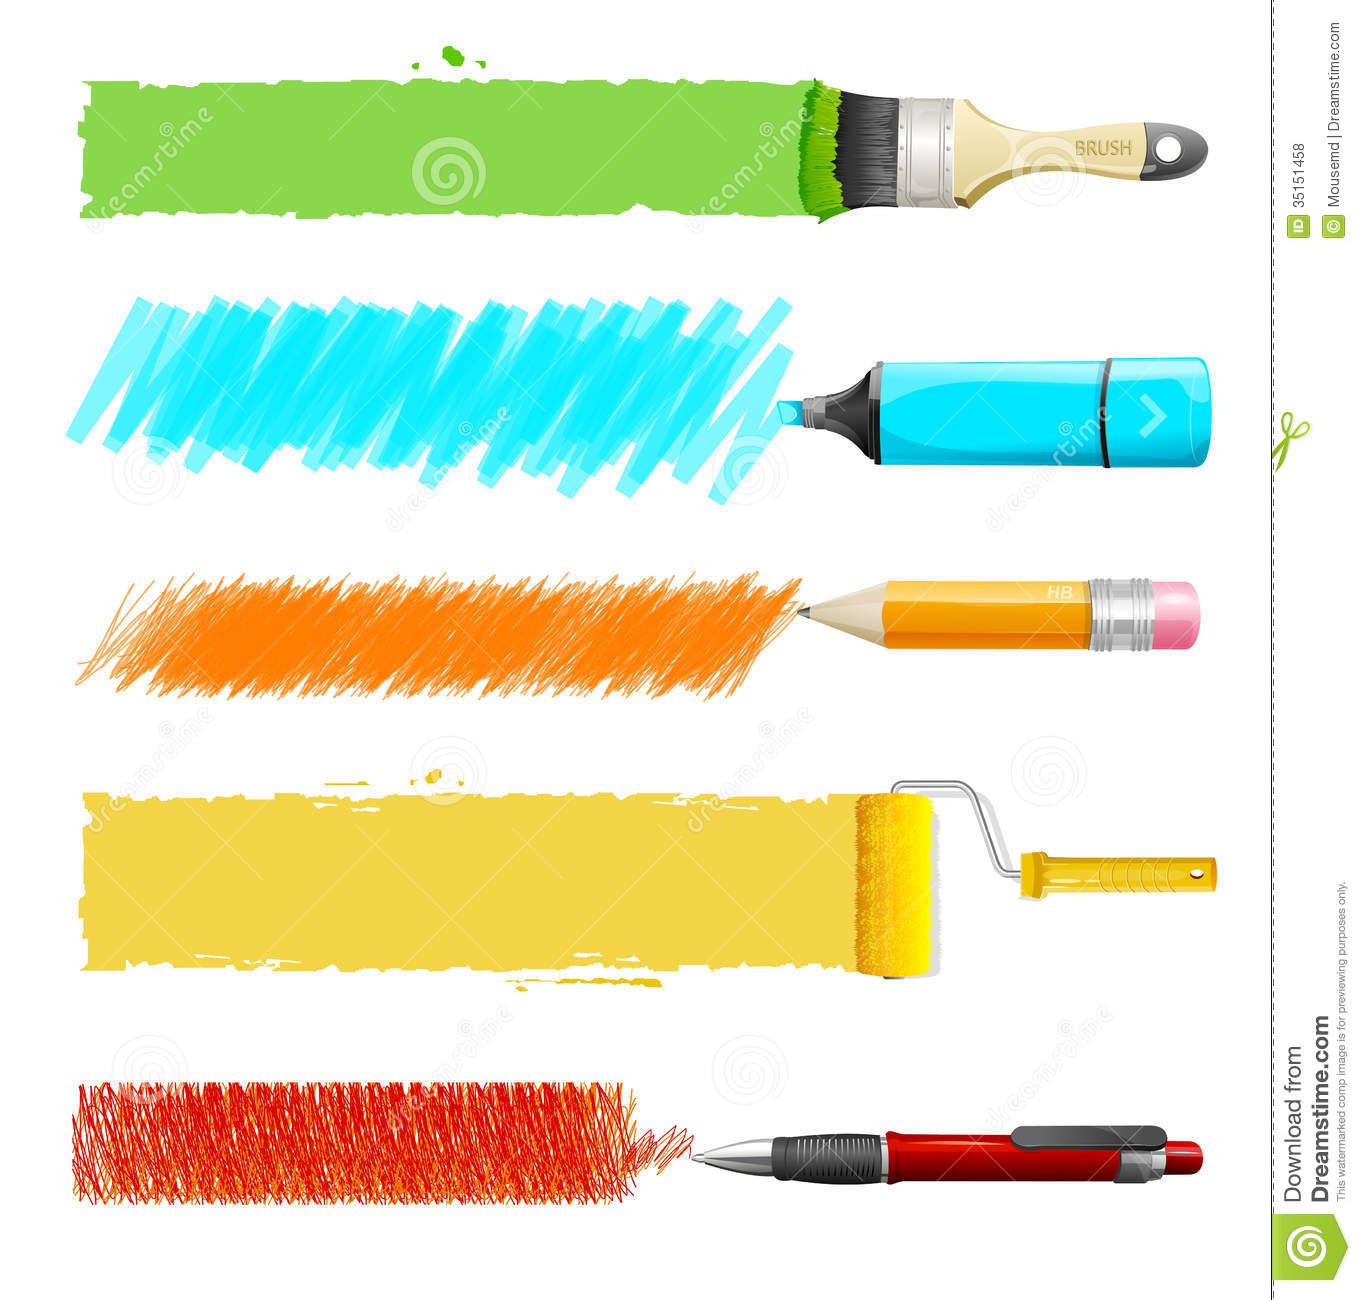 How to paint vector tube - 2fa